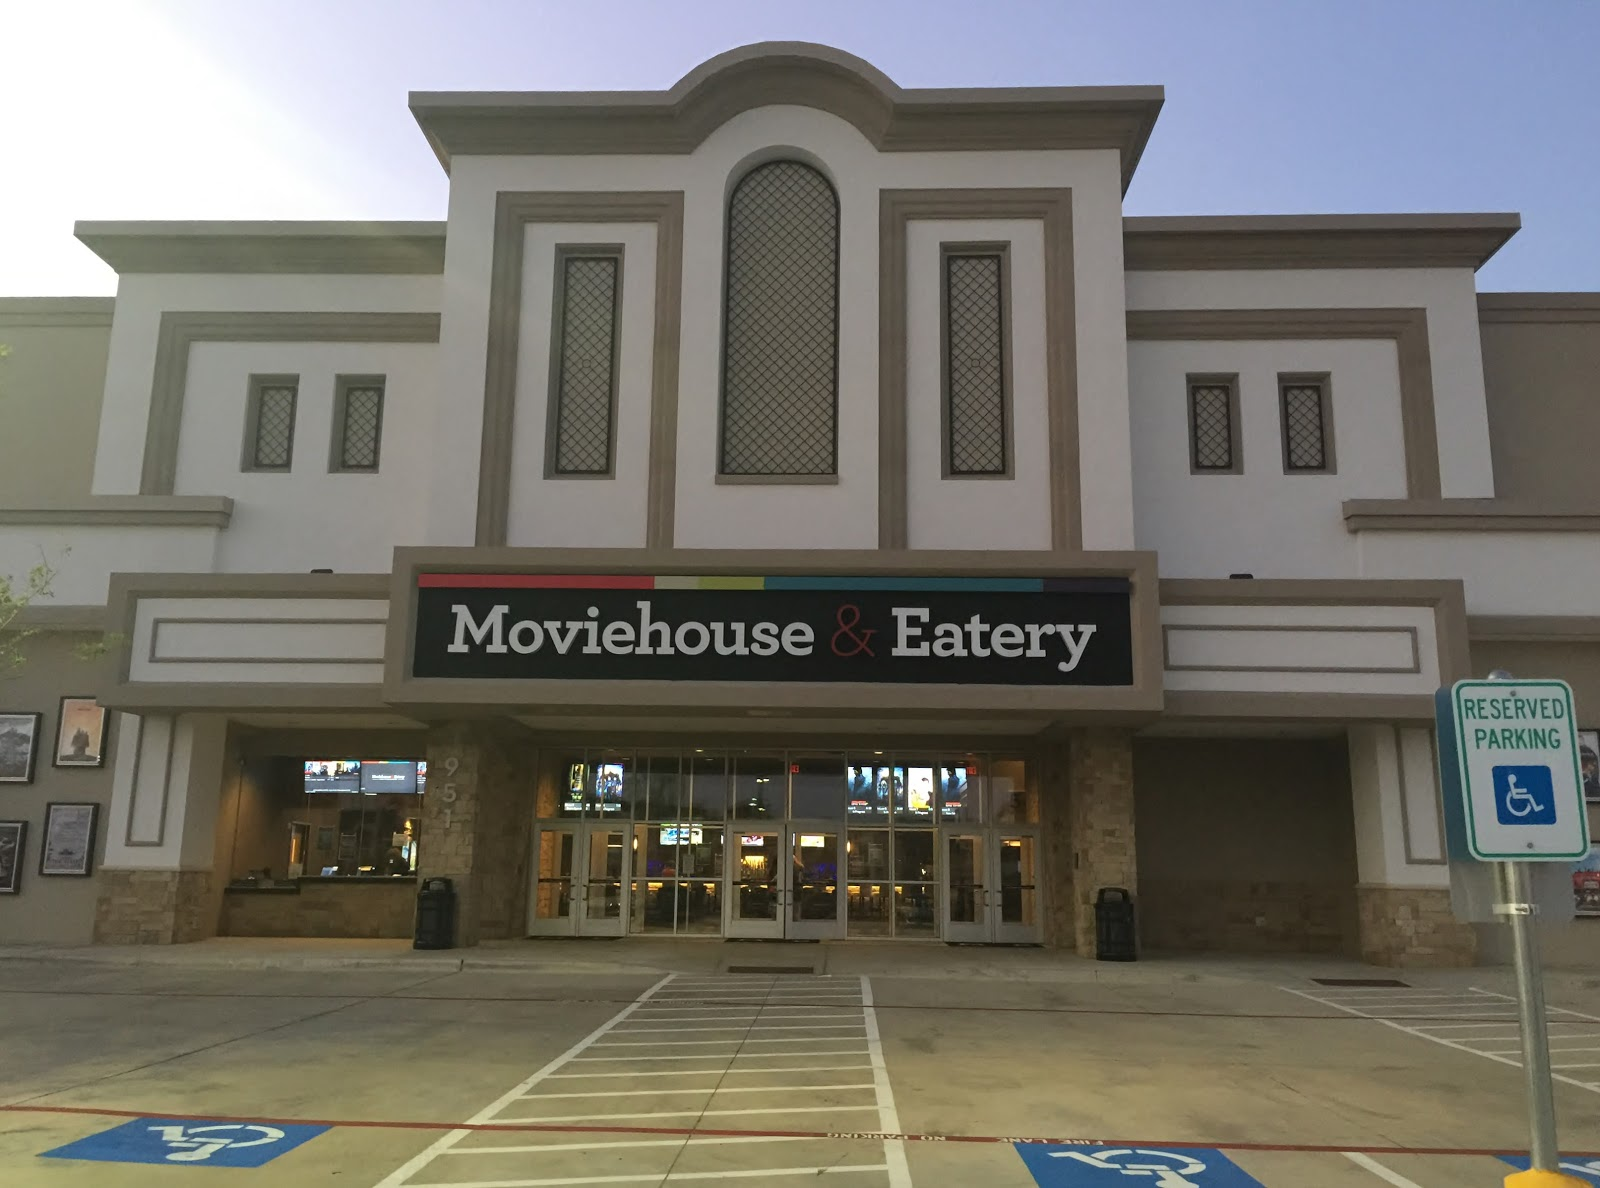 Lakeside Movie House Home Moviehouse Eatery Home Moviehouse Eatery Moviehouse